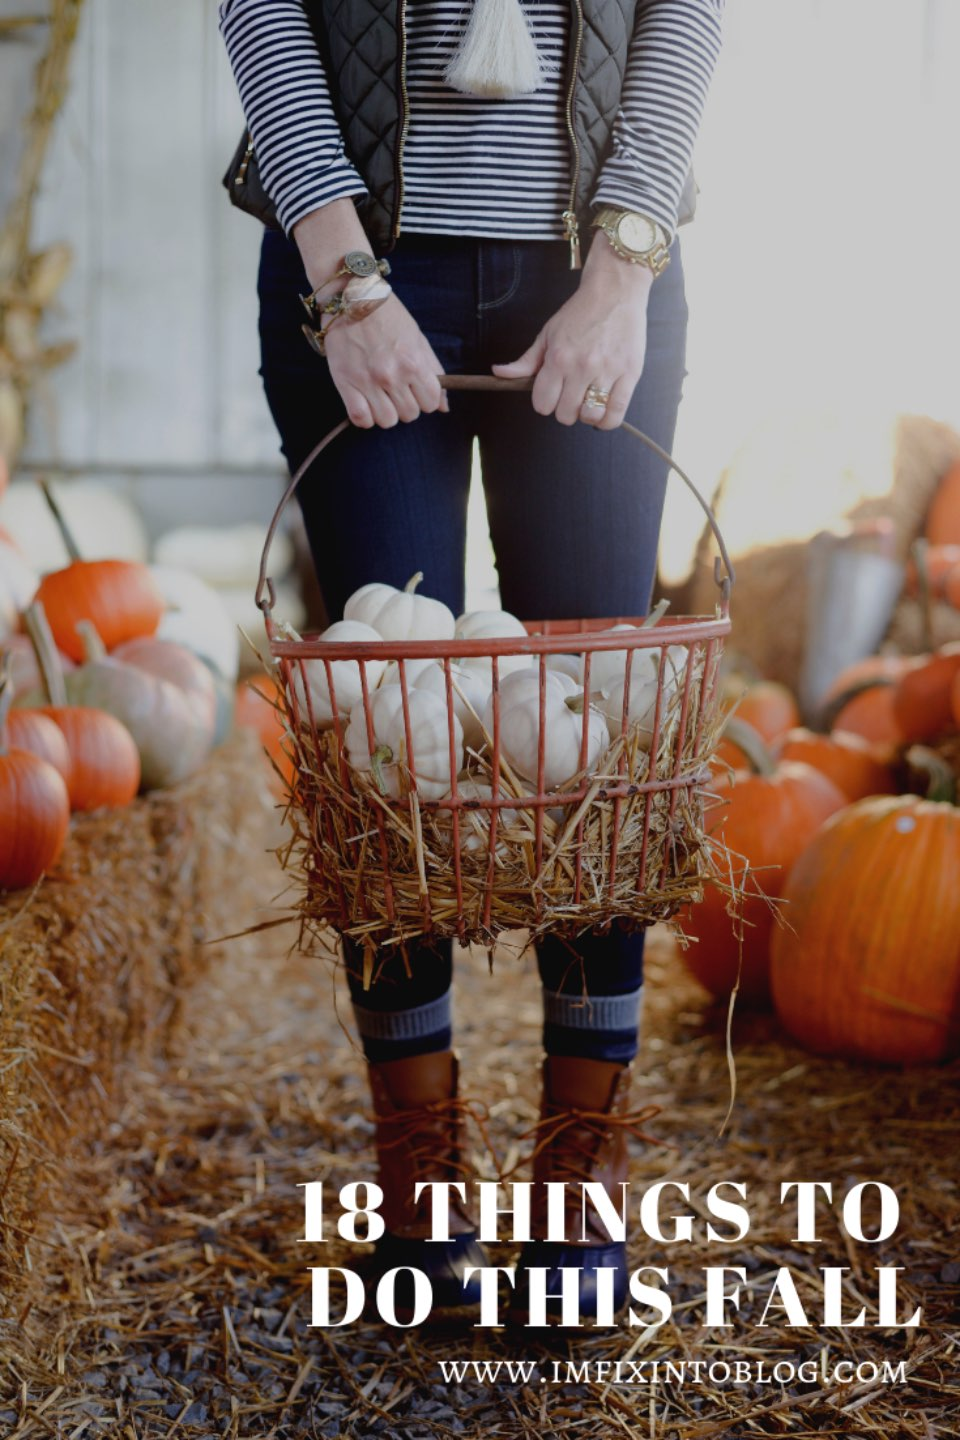 18 Things to Do This Fall - I'm Fixin' To - @mbg0112